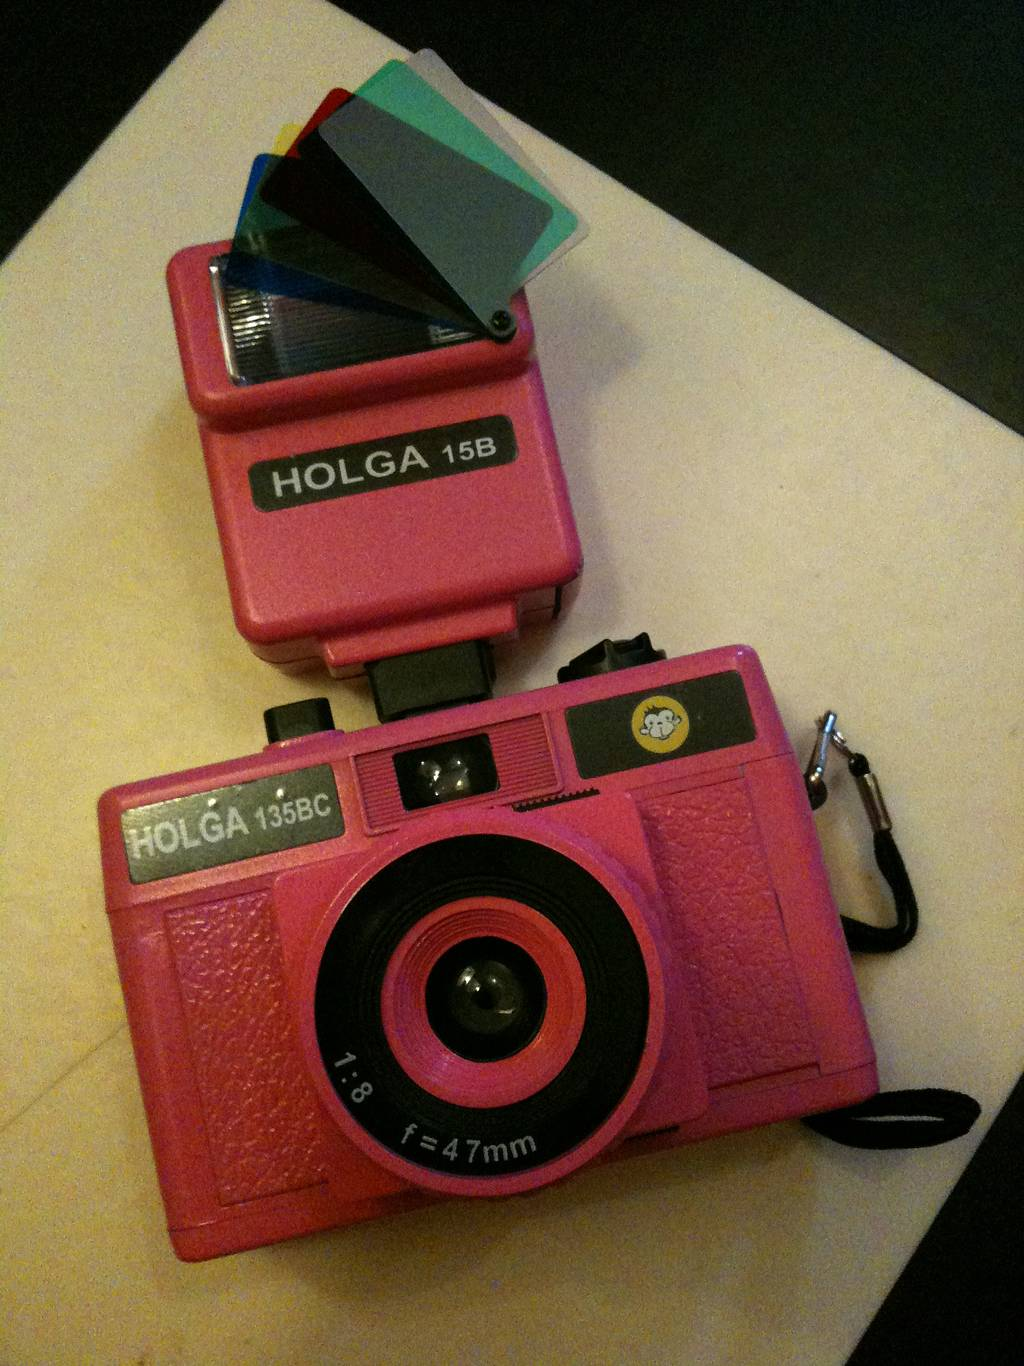 Holga 135 BC: The Masked Queen